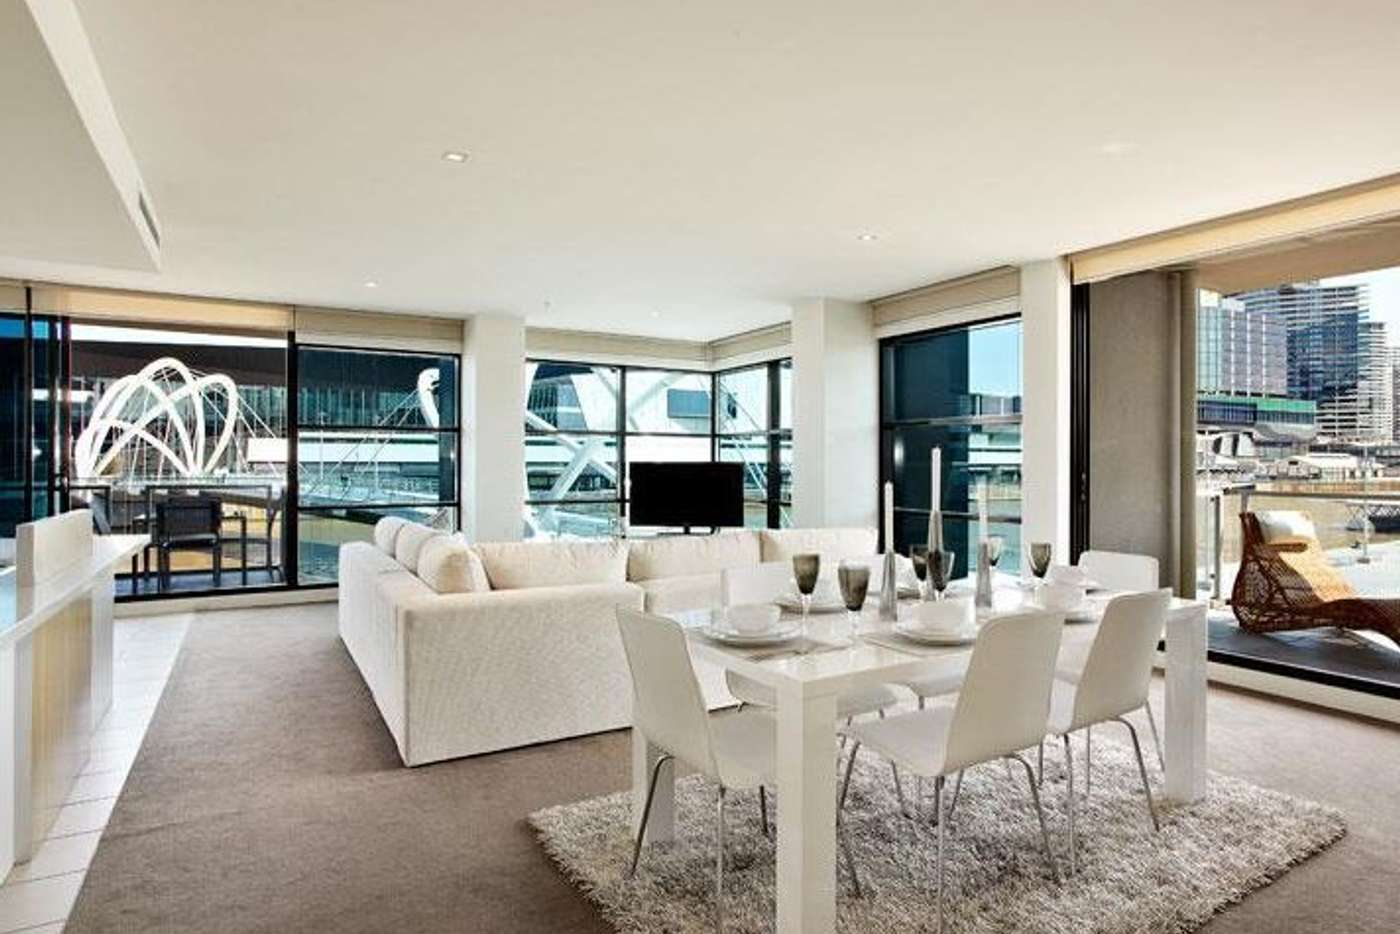 Main view of Homely apartment listing, 114/60 Siddeley Street, Docklands VIC 3008